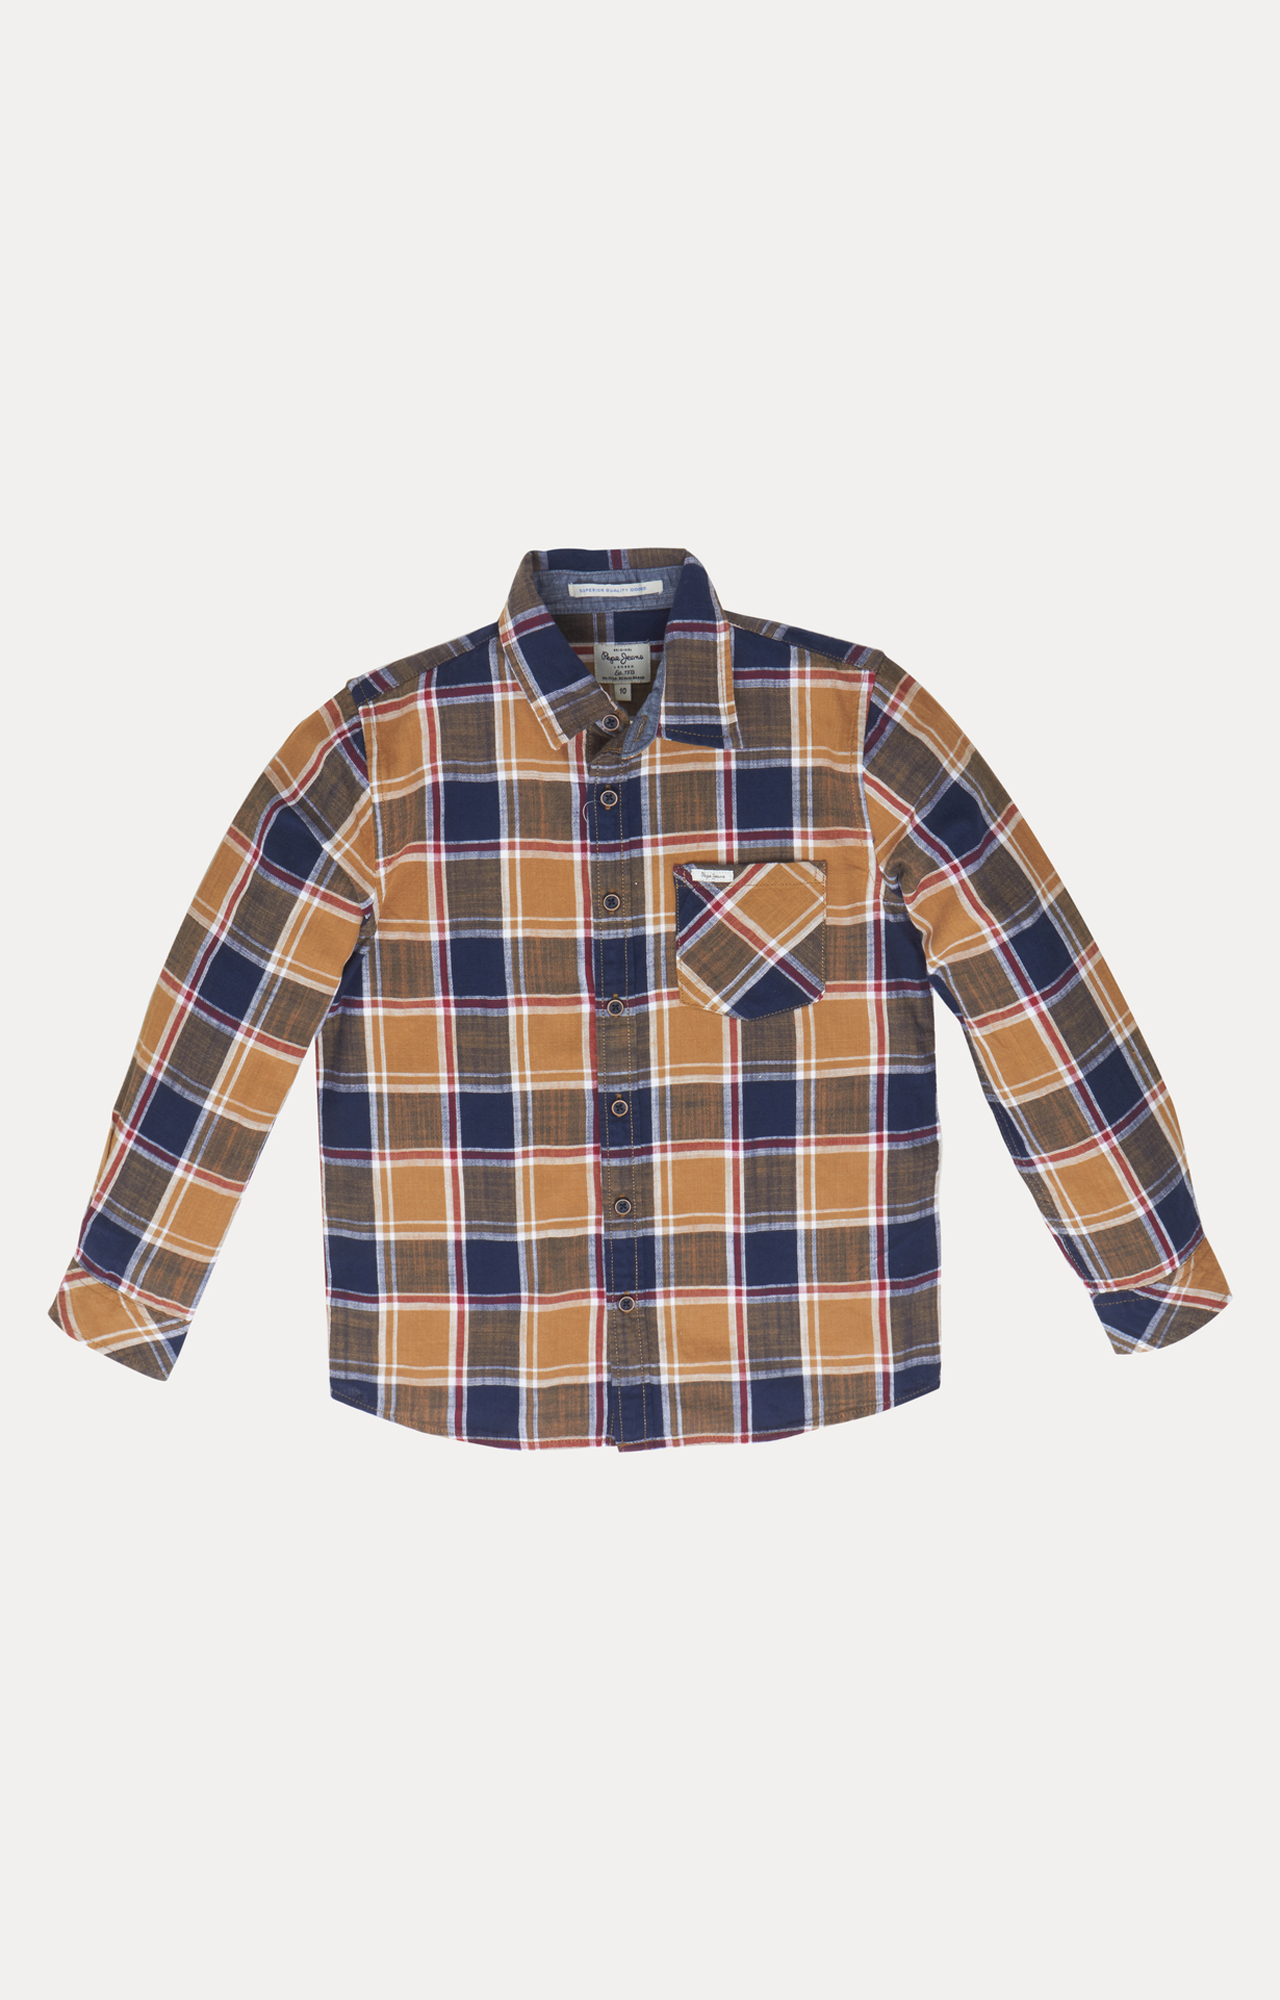 Pepe Jeans | Brown and Blue Checked Shirt